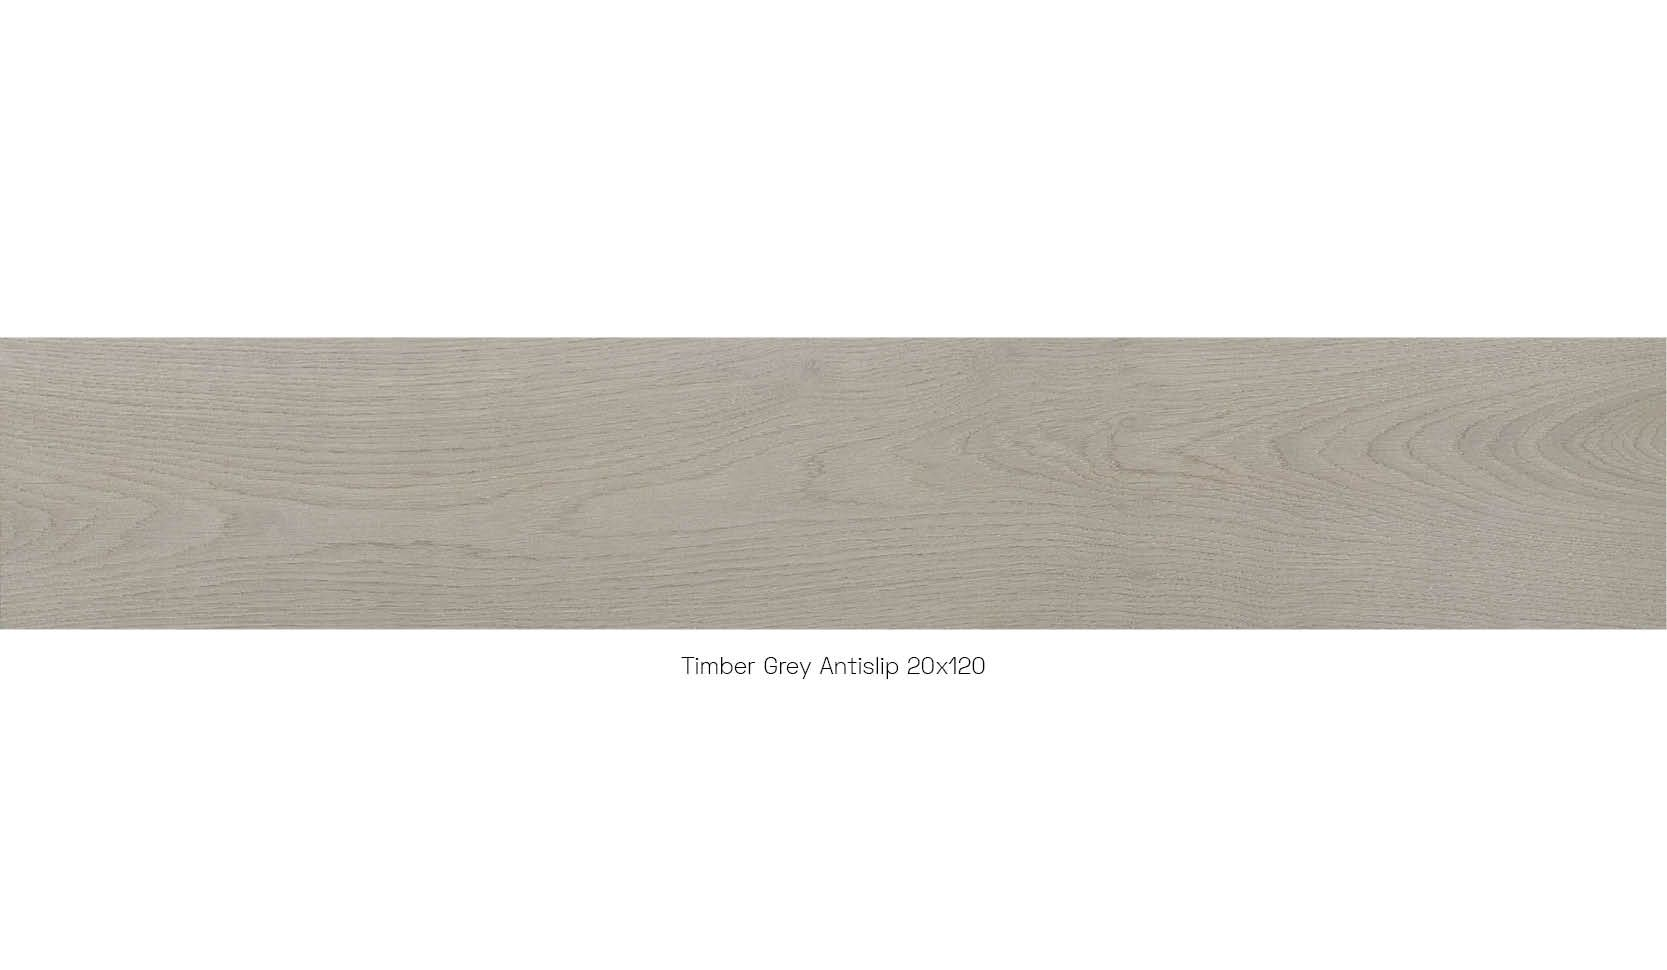 Timber grey antislip 20 x 120